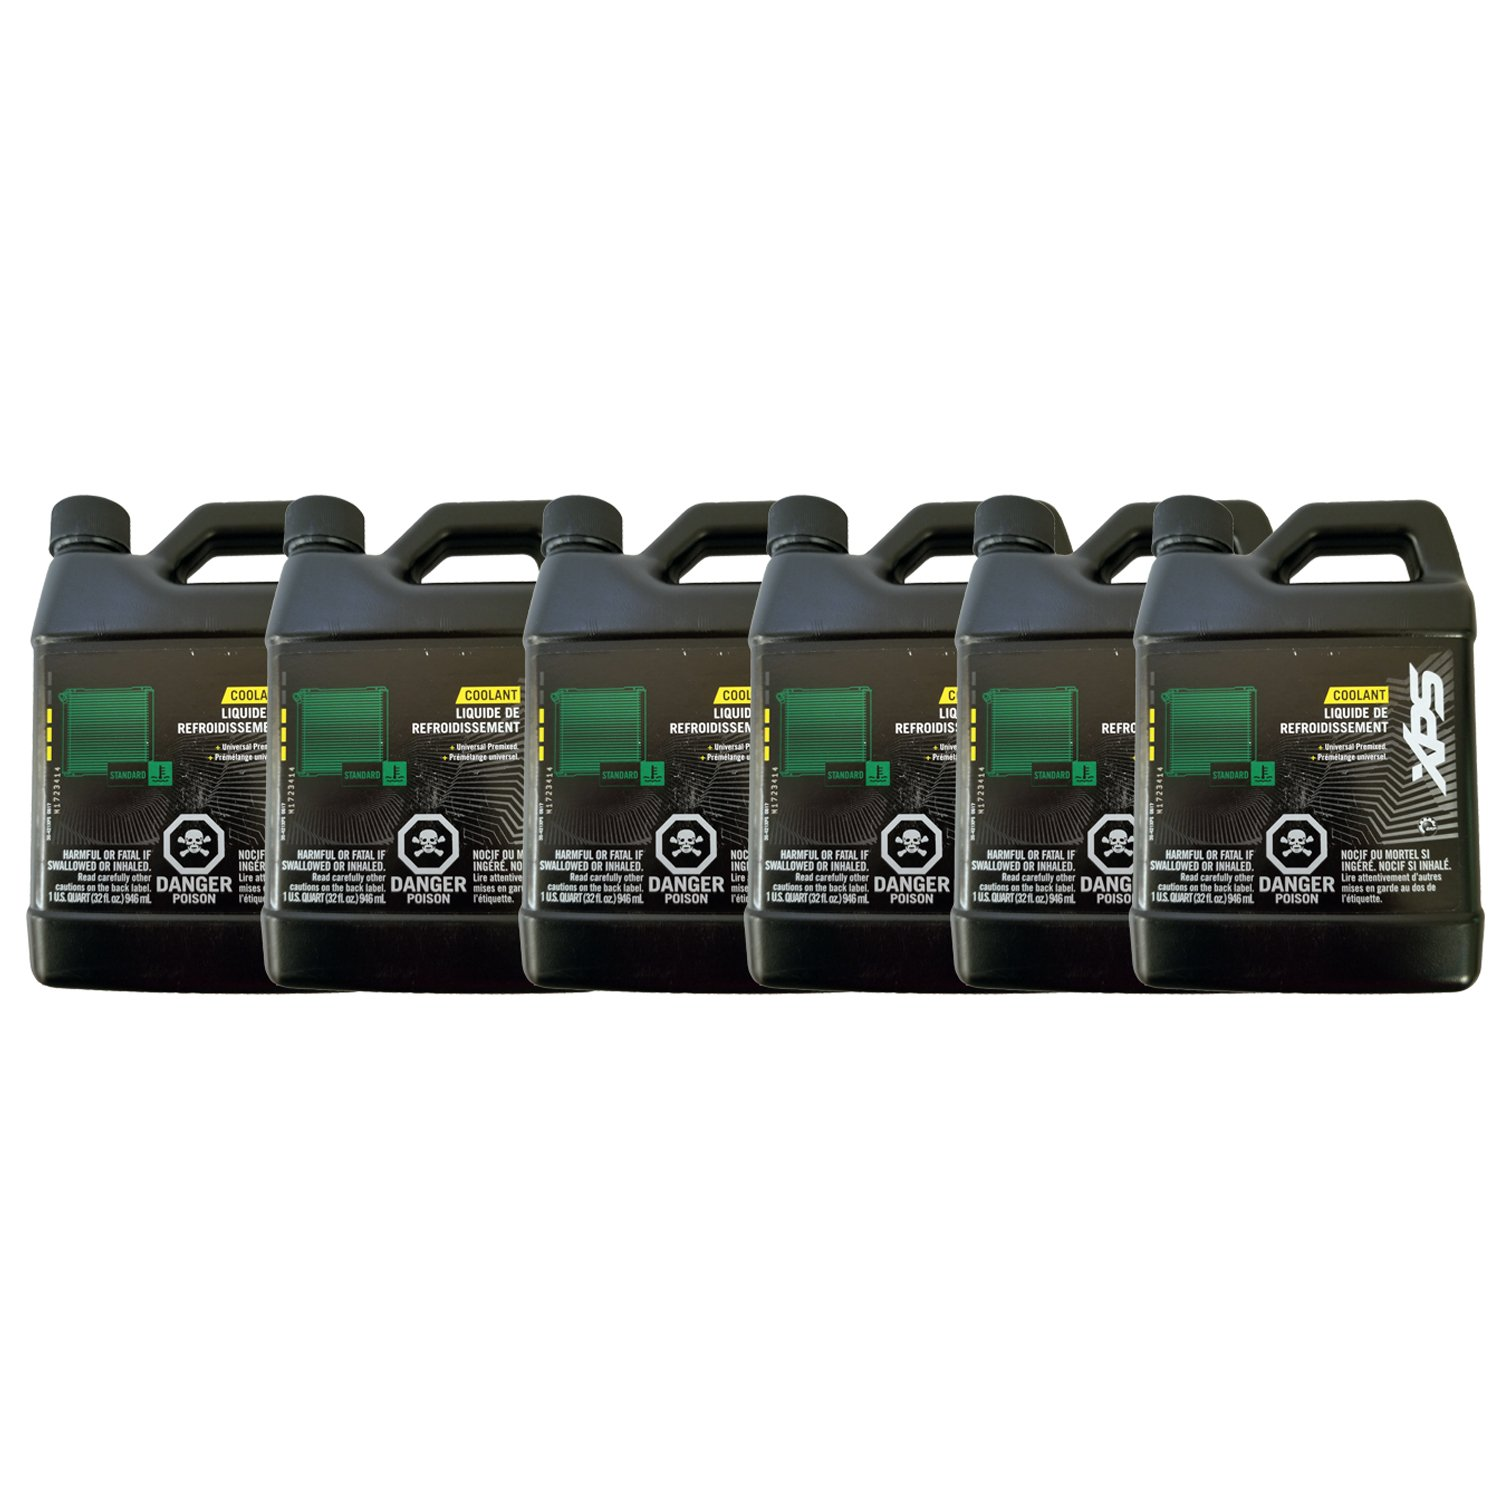 BRP Ski-Doo Can-Am XPS New OEM Pre-Mix Antifreeze/Coolant Quart, 6 Pack, 779149